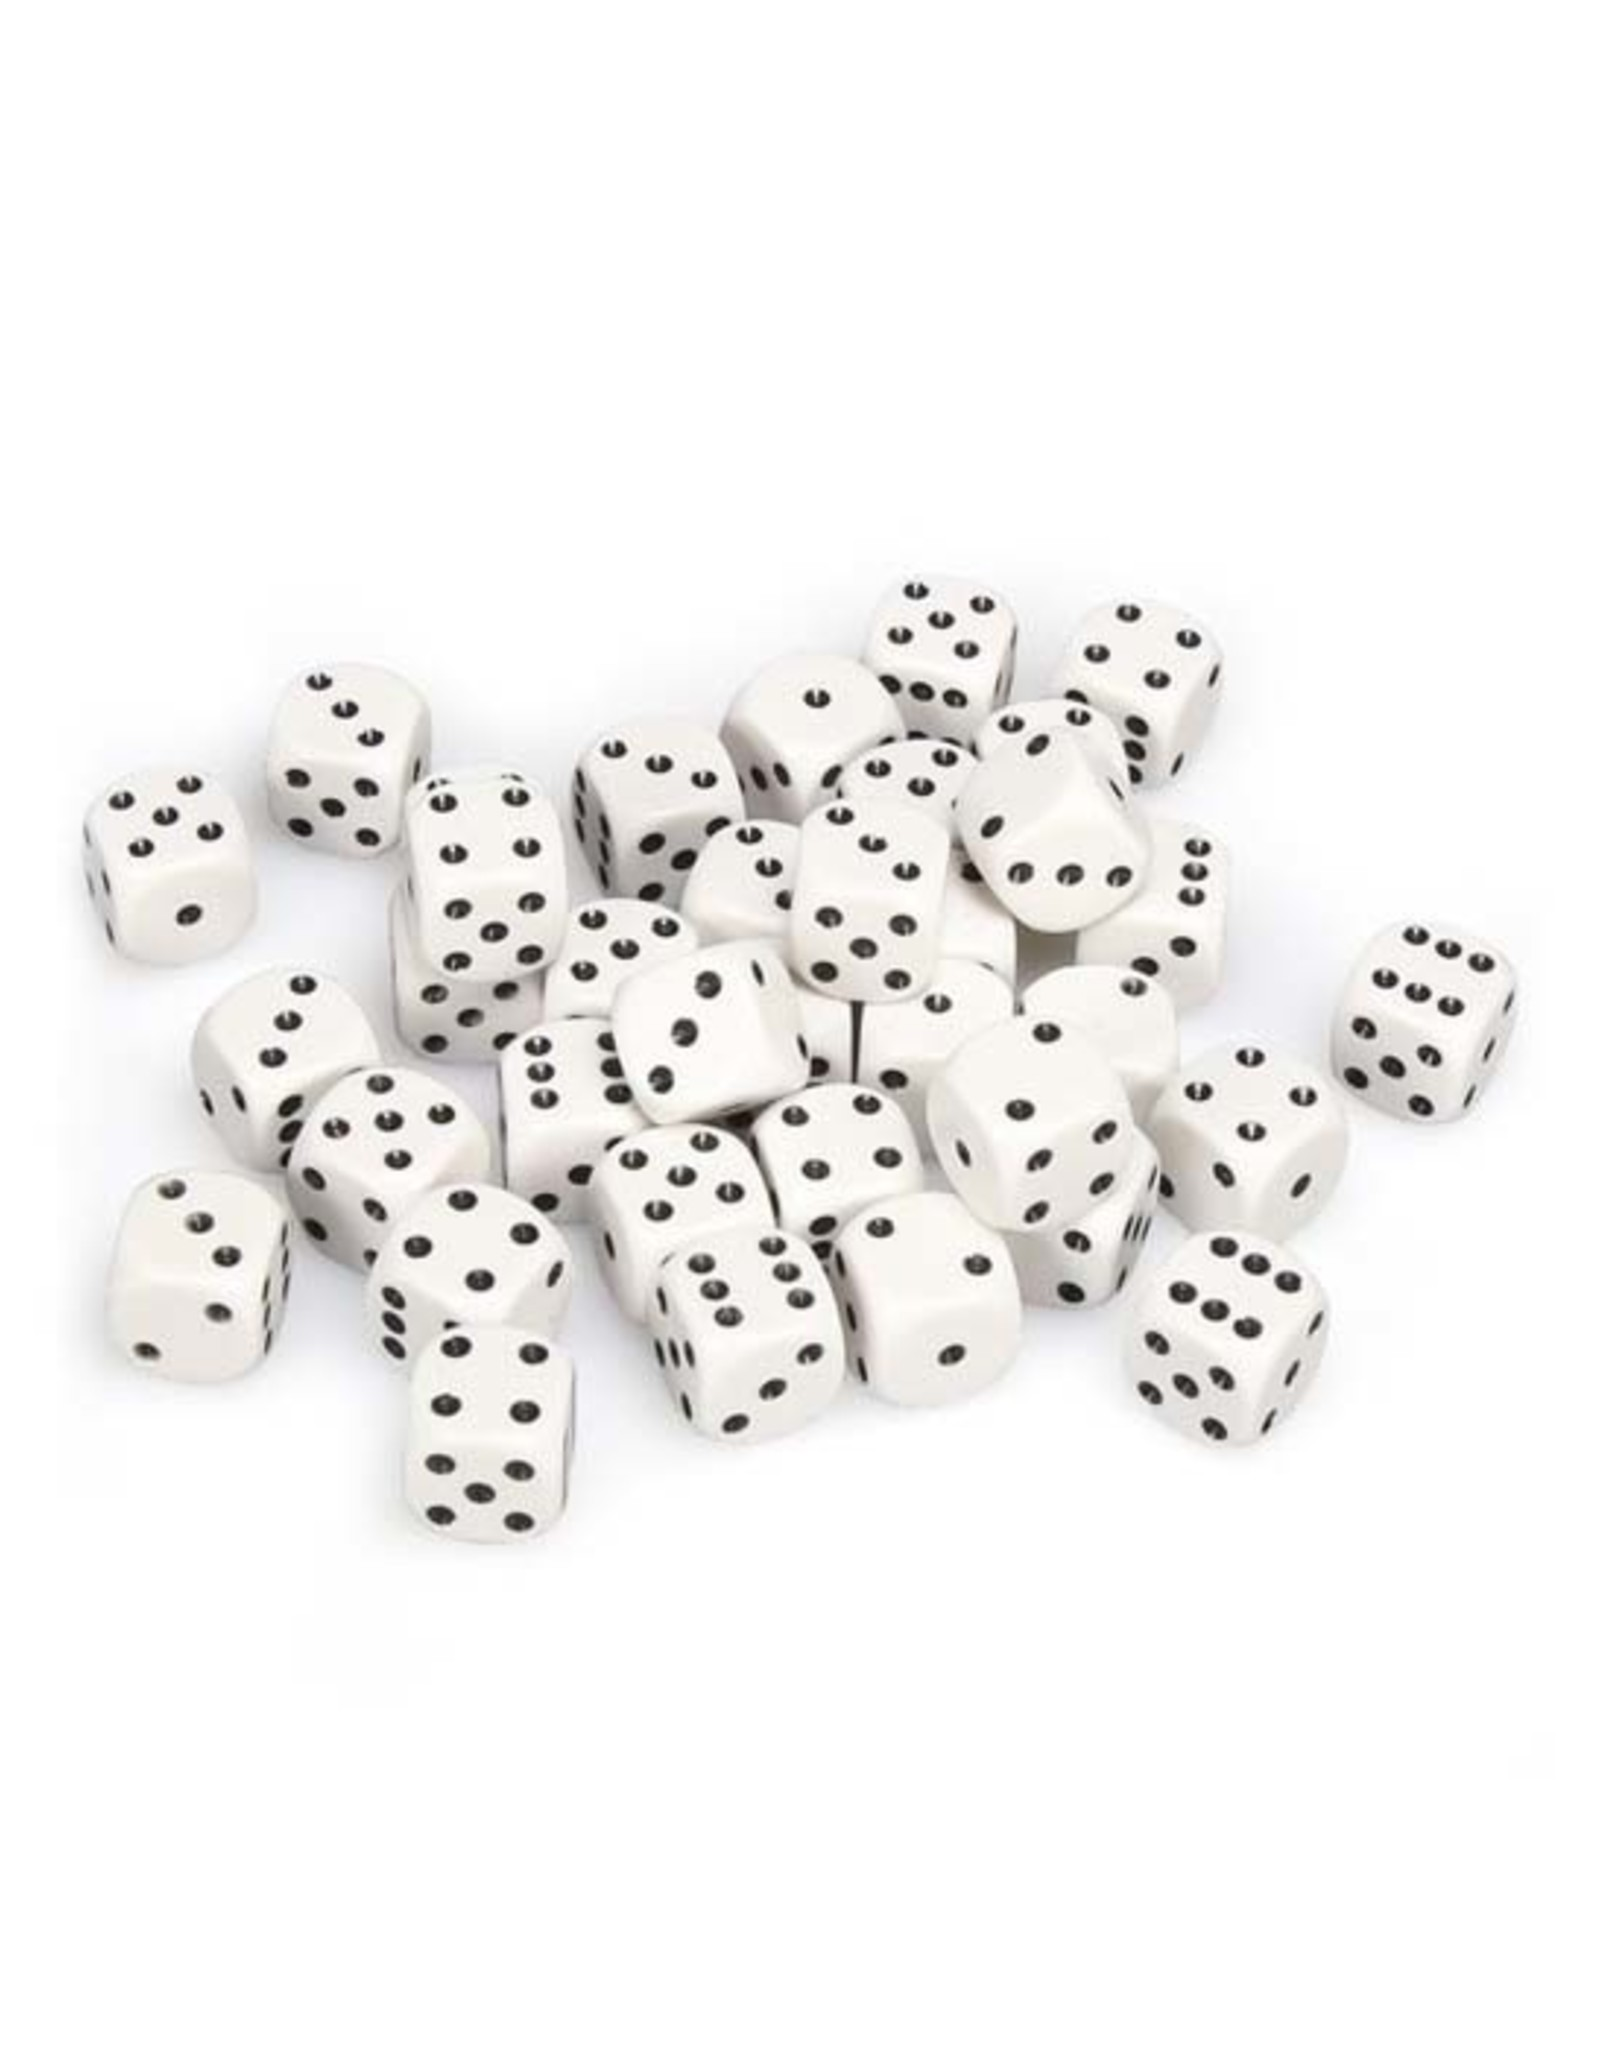 Chessex Chessex: 12mm D6 - Opaque - White w/ Black